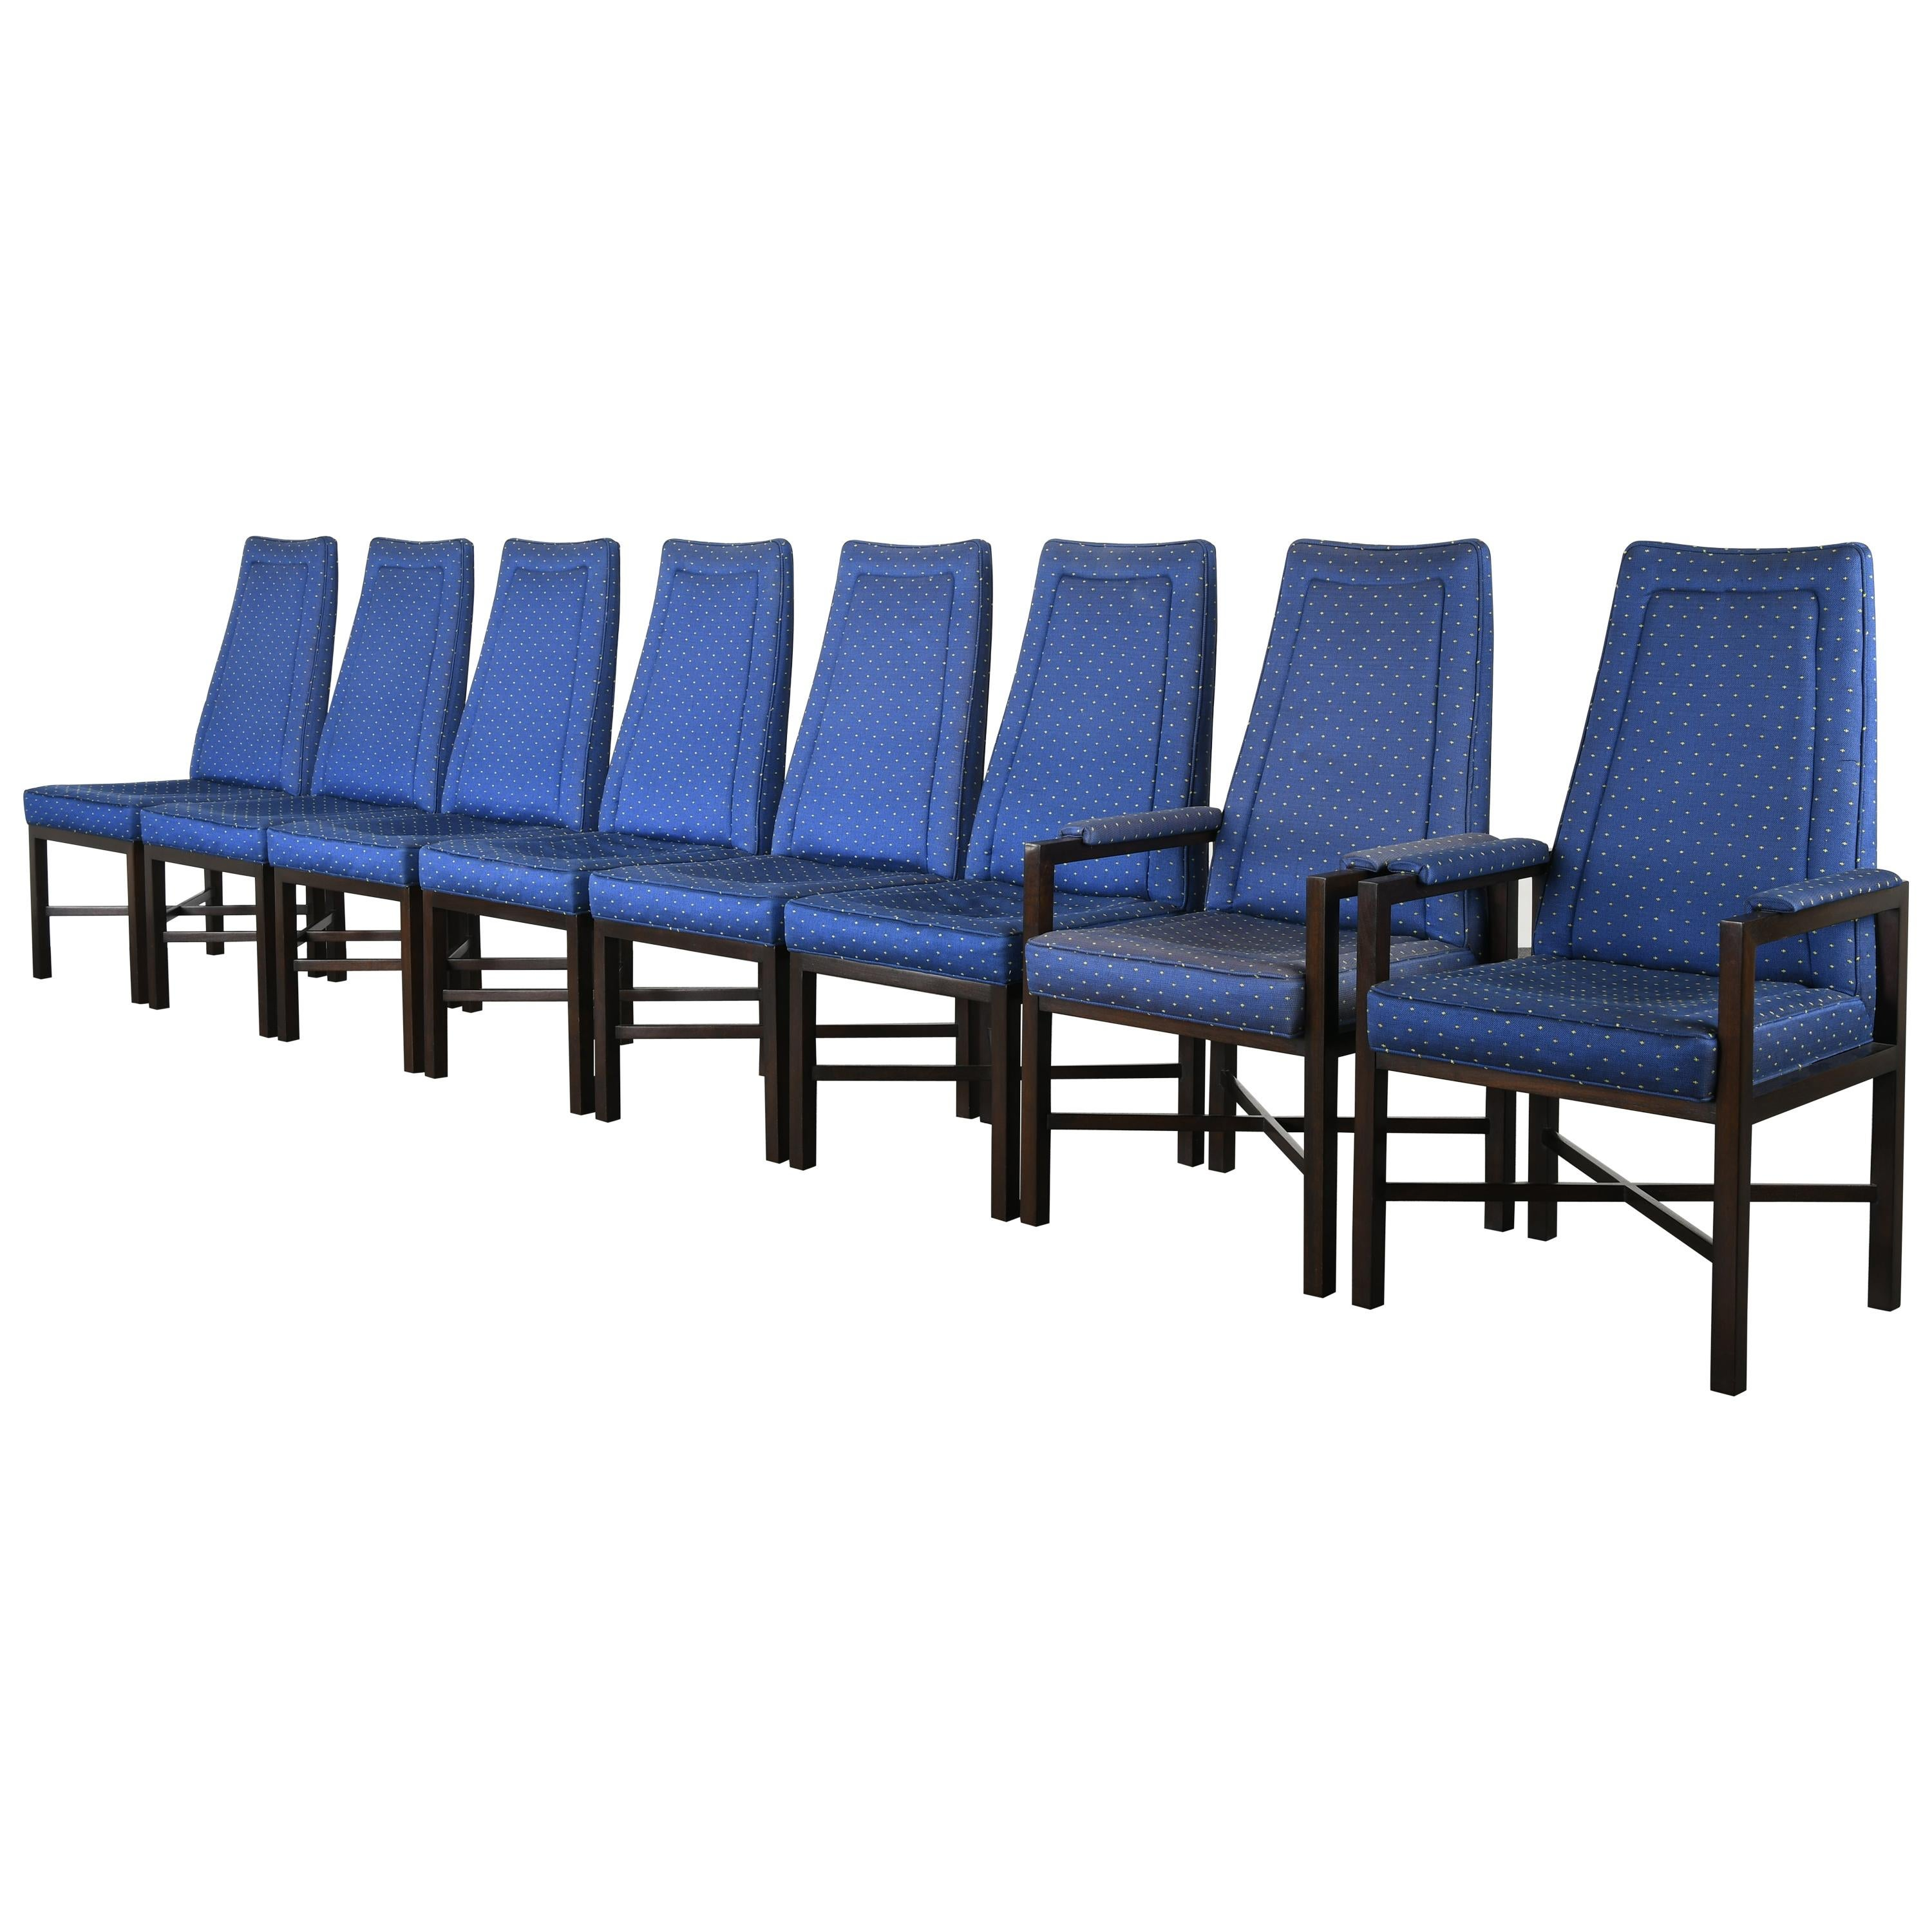 Set of Eight Roger Sprunger for Dunbar Dining Chairs, 1960s